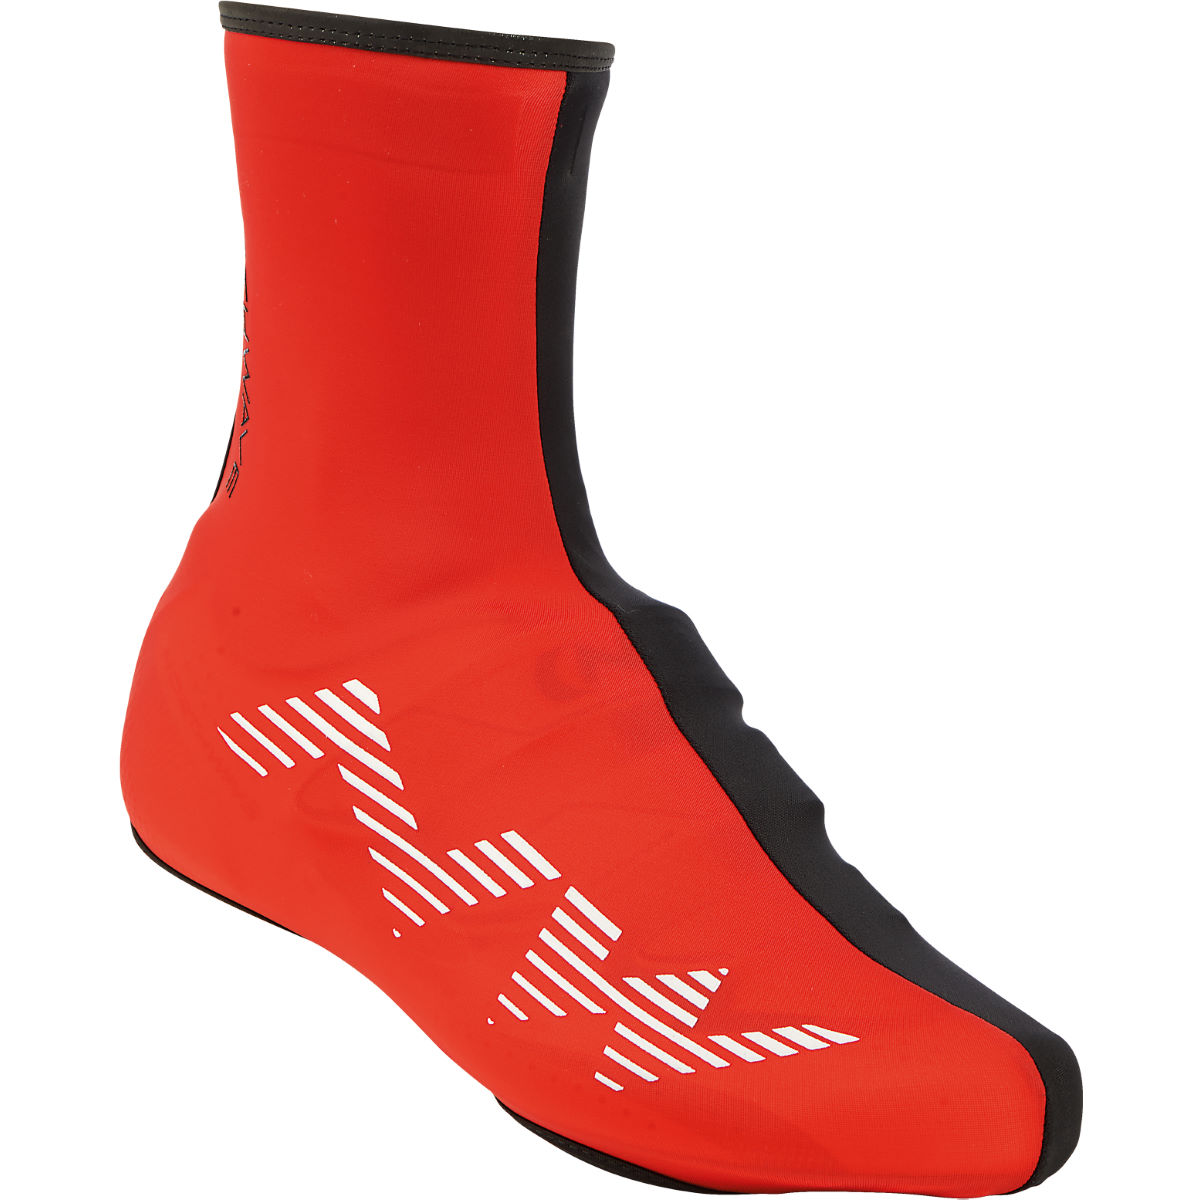 Couvre-chaussures Northwave Evolution - S Rouge Couvre-chaussures